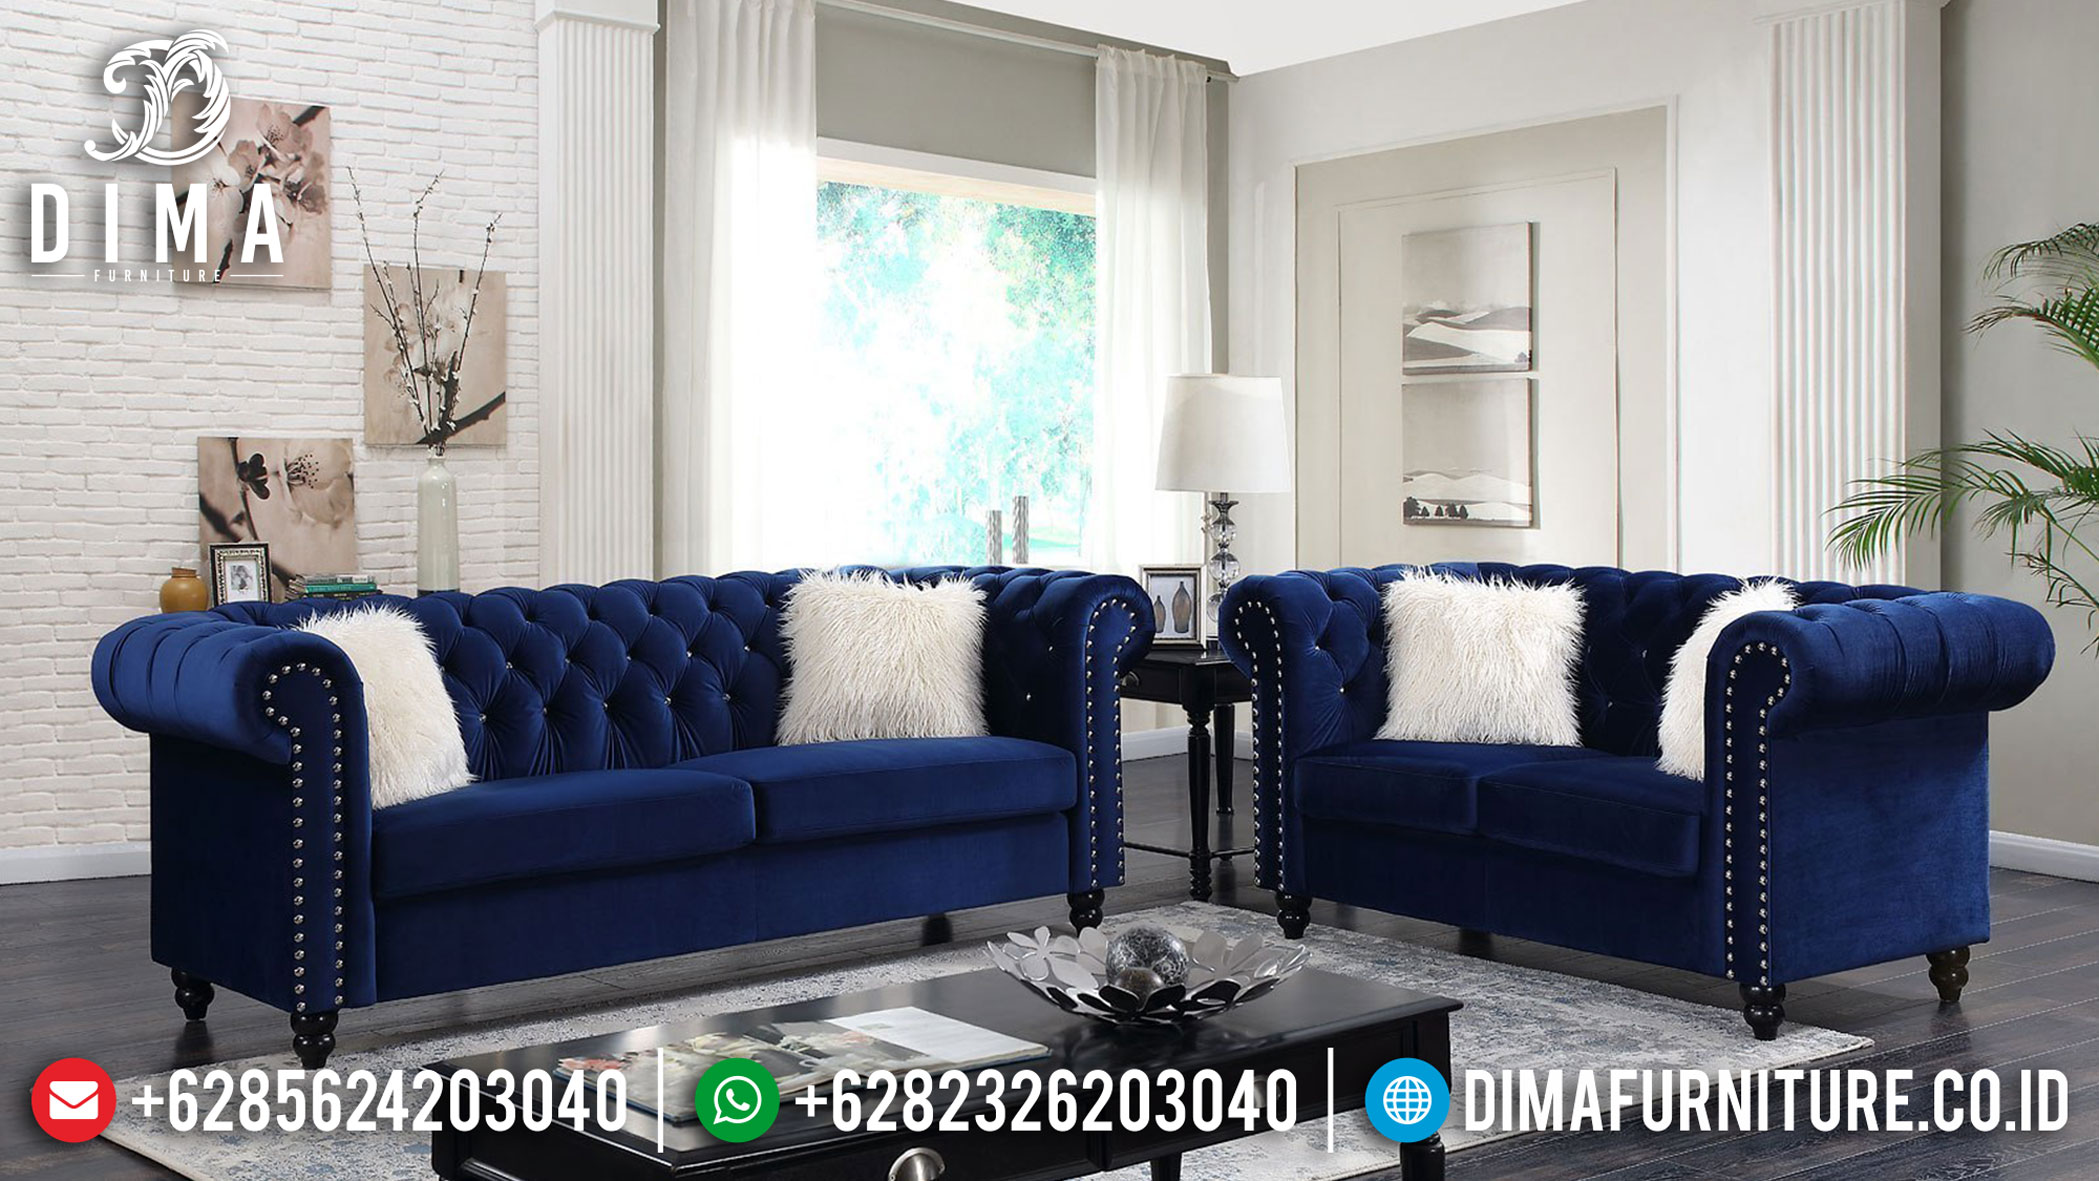 Model Sofa Tamu Minimalis Modern Chesterfield Design New Years Sale Mebel Jepara TTJ-1223